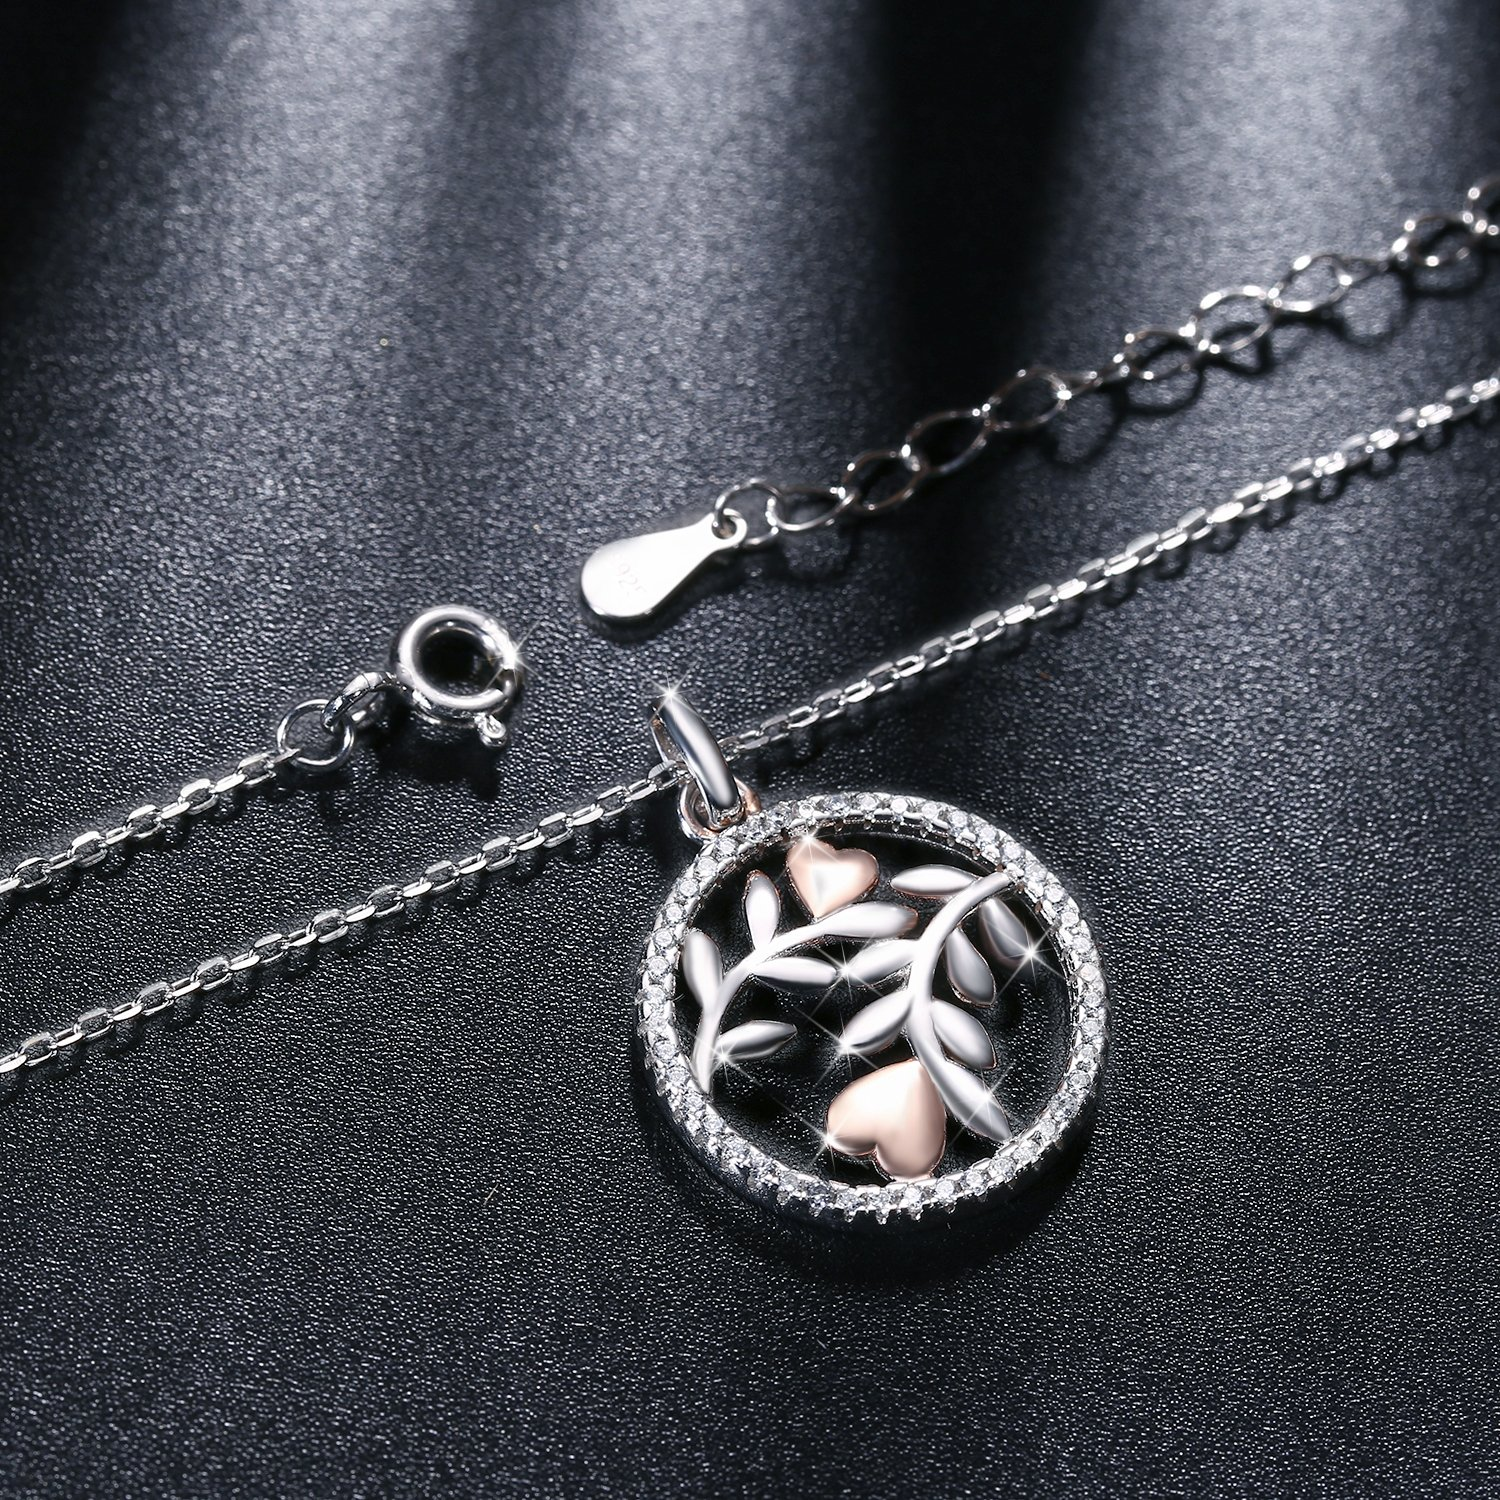 45+5cm Extender J.Ros/ée Tree of Life Pendant Necklaces Best Gift 925 Sterling Silver Nickel Free Anti-Allergic Jewellery